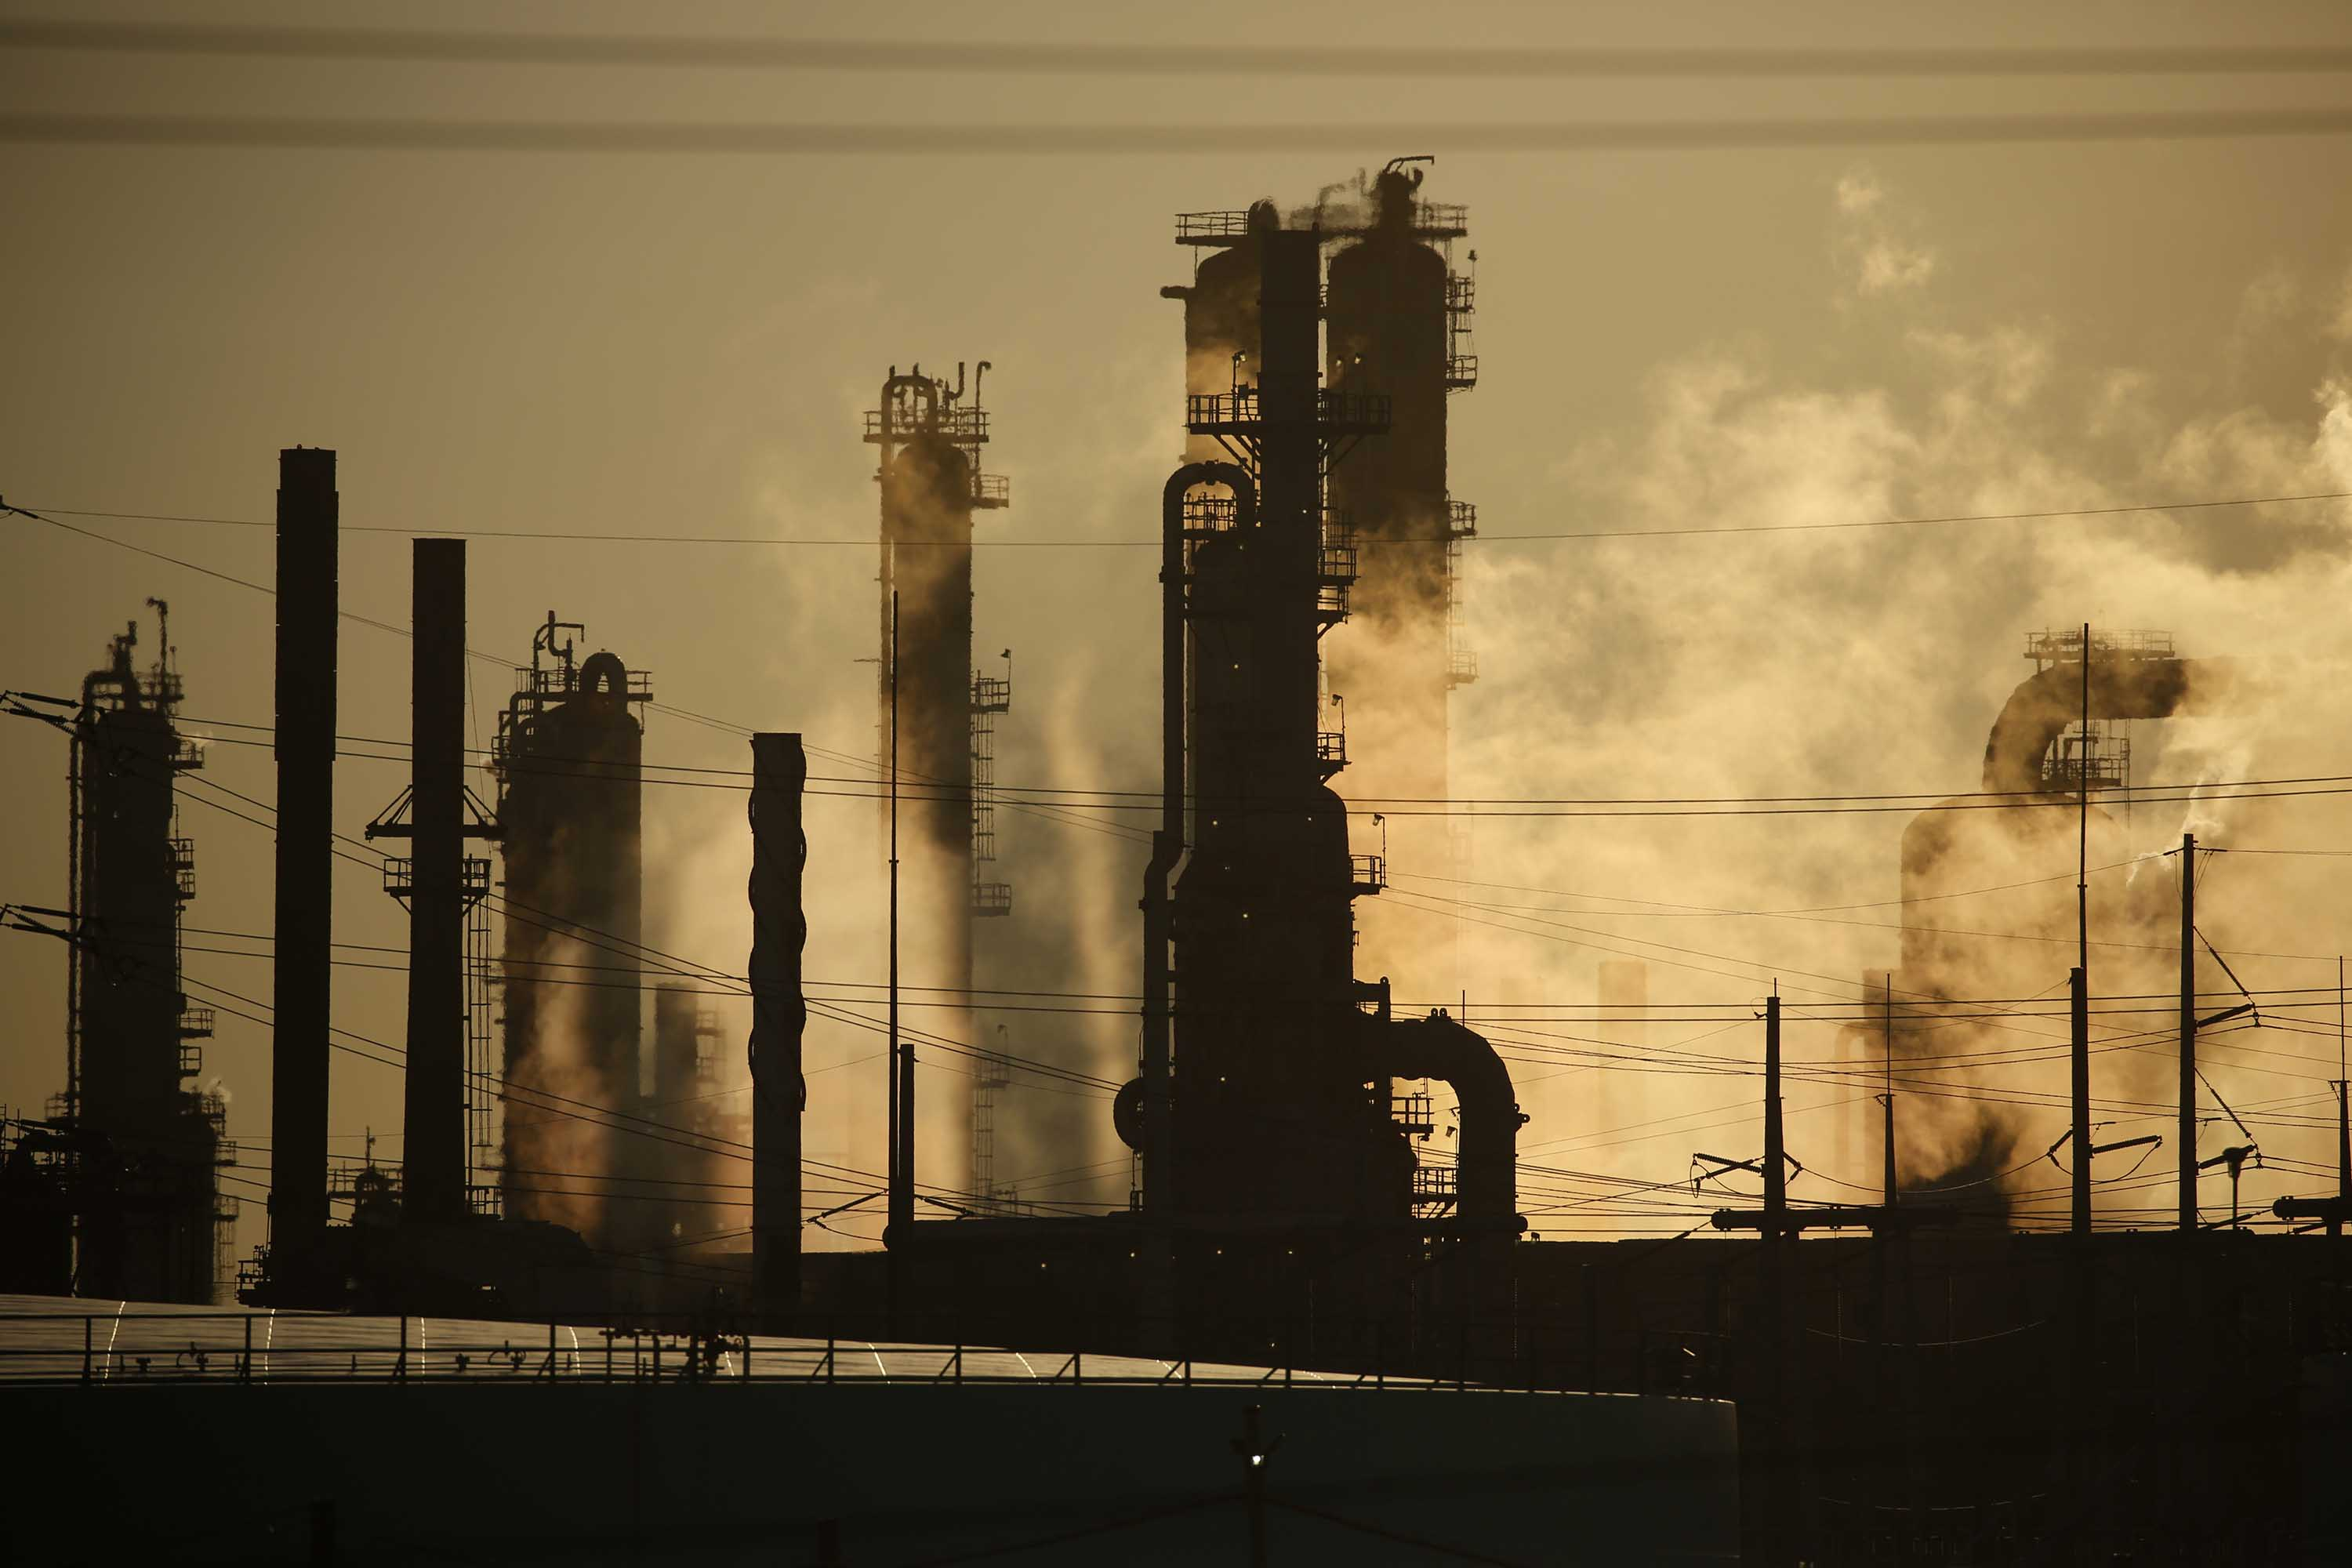 The Royal Dutch Shell Plc Norco Refinery is pictured in Norco, Louisiana, on June 12.